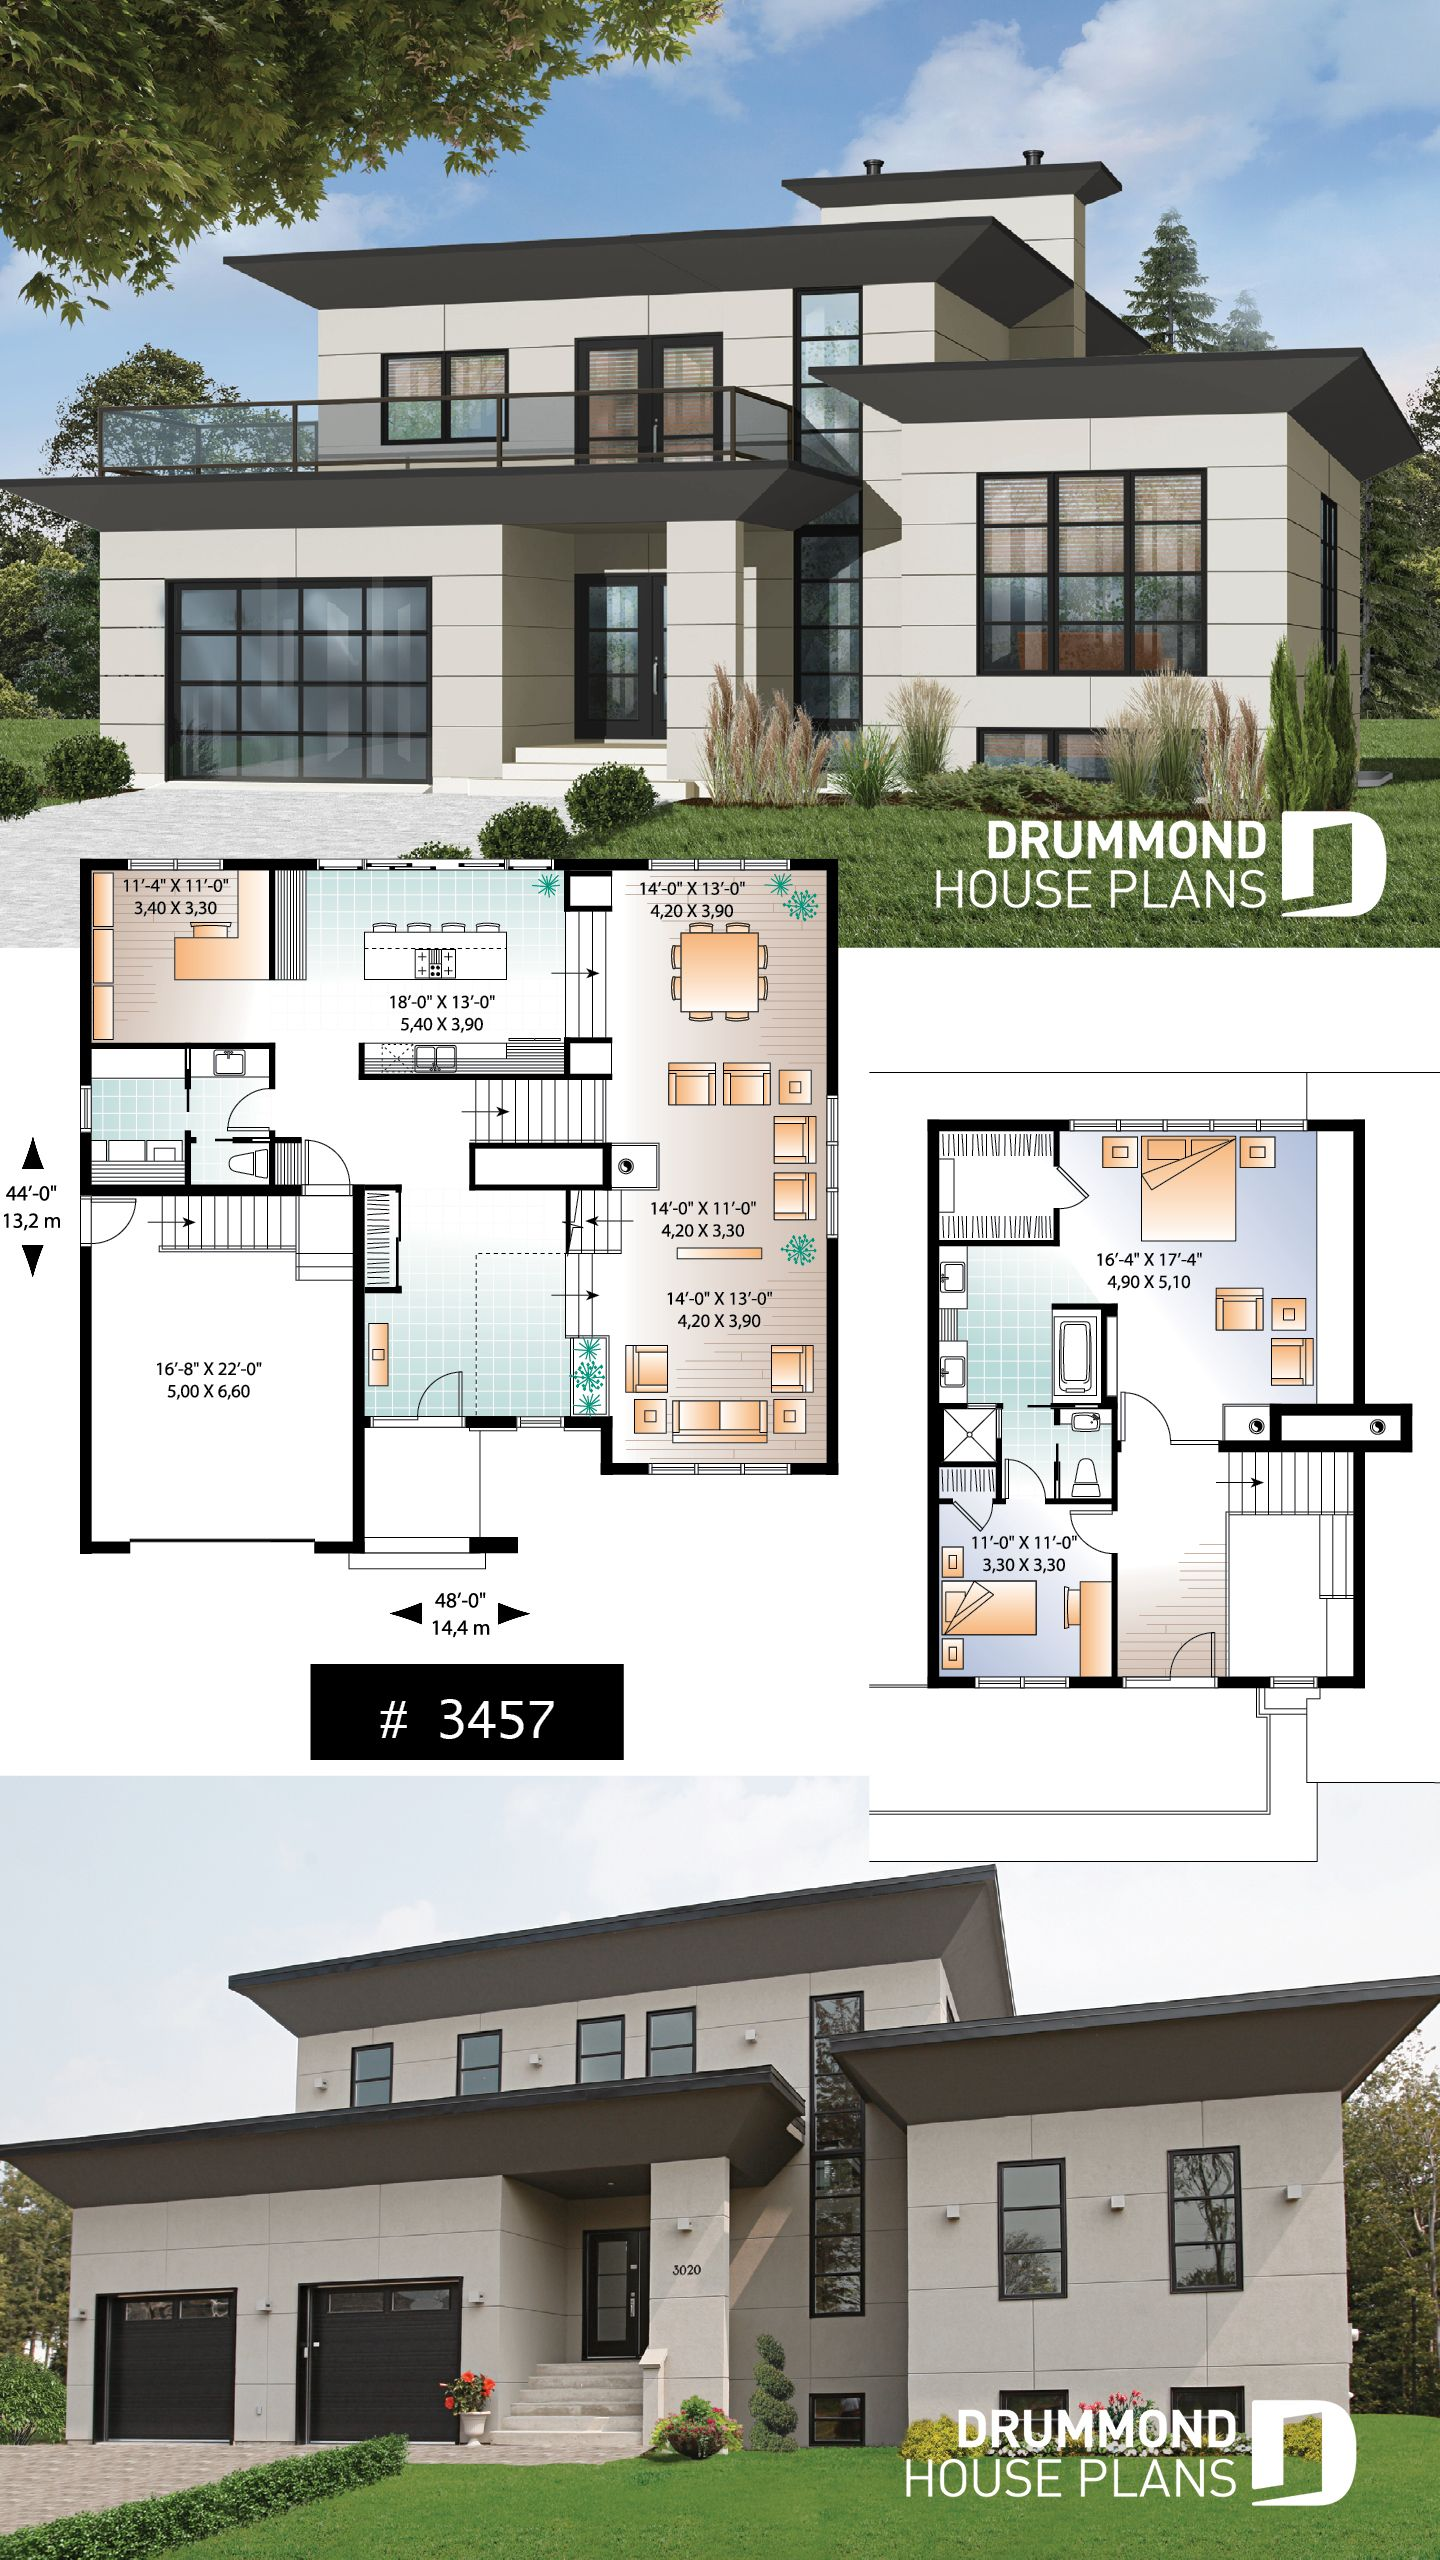 Decouvrez Le Plan 3457 Hauterive Qui Vous Plaira Pour Ses 5 2 3 4 Chambres Et Son Style Contemporain Zen Modern House Floor Plans Contemporary House Plans Modern Style House Plans